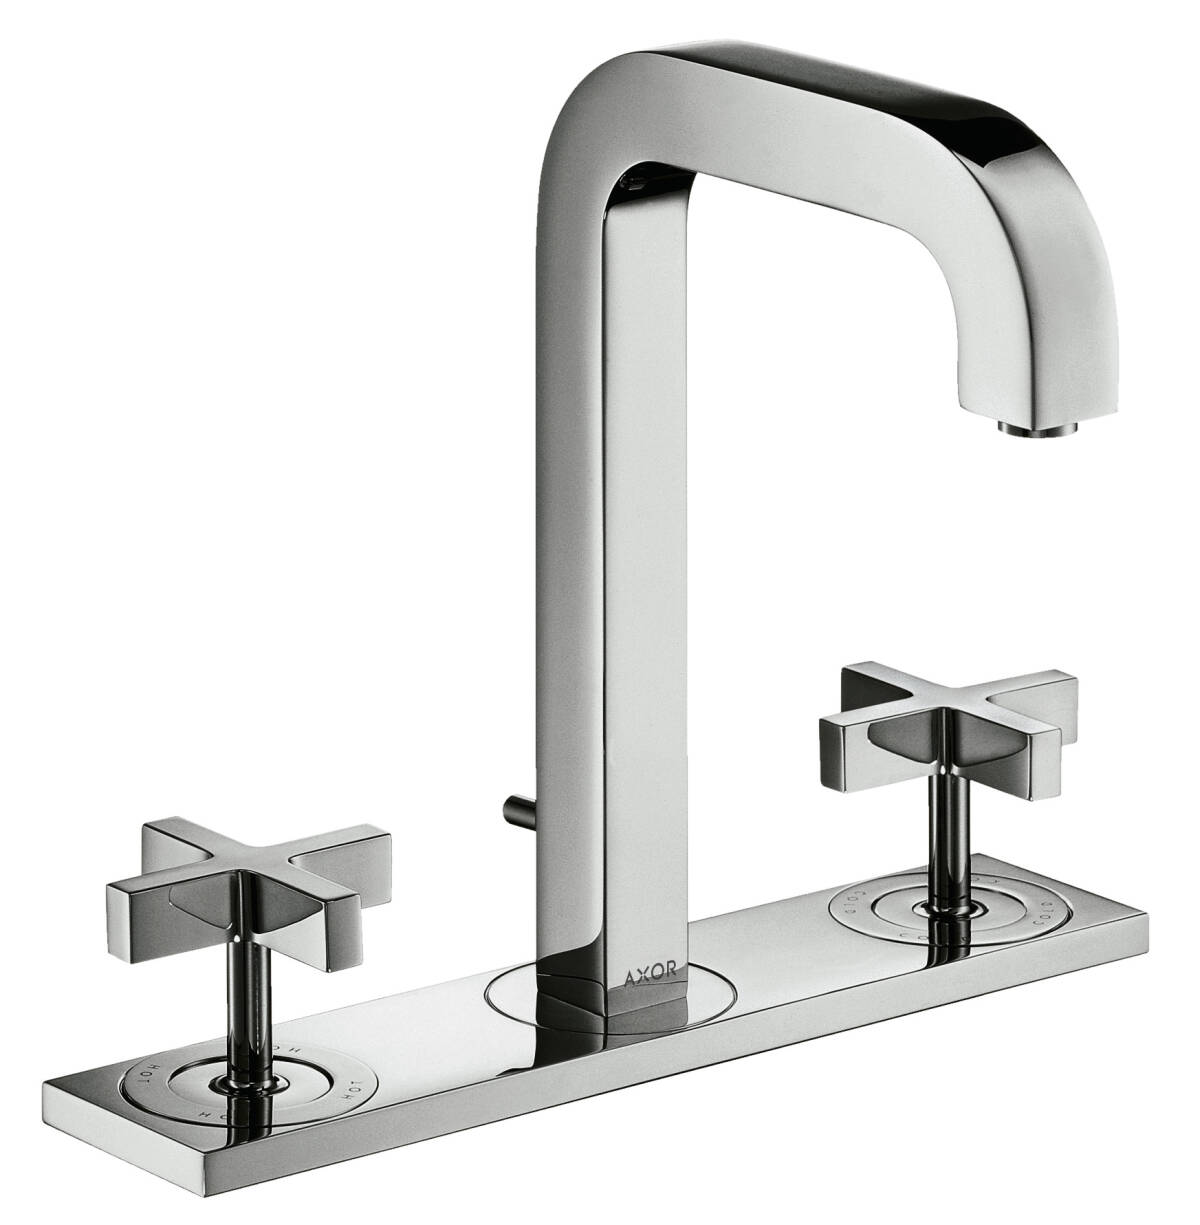 3-hole basin mixer 170 with spout 140 mm, cross handles, plate and pop-up waste set, Brushed Bronze, 39134140